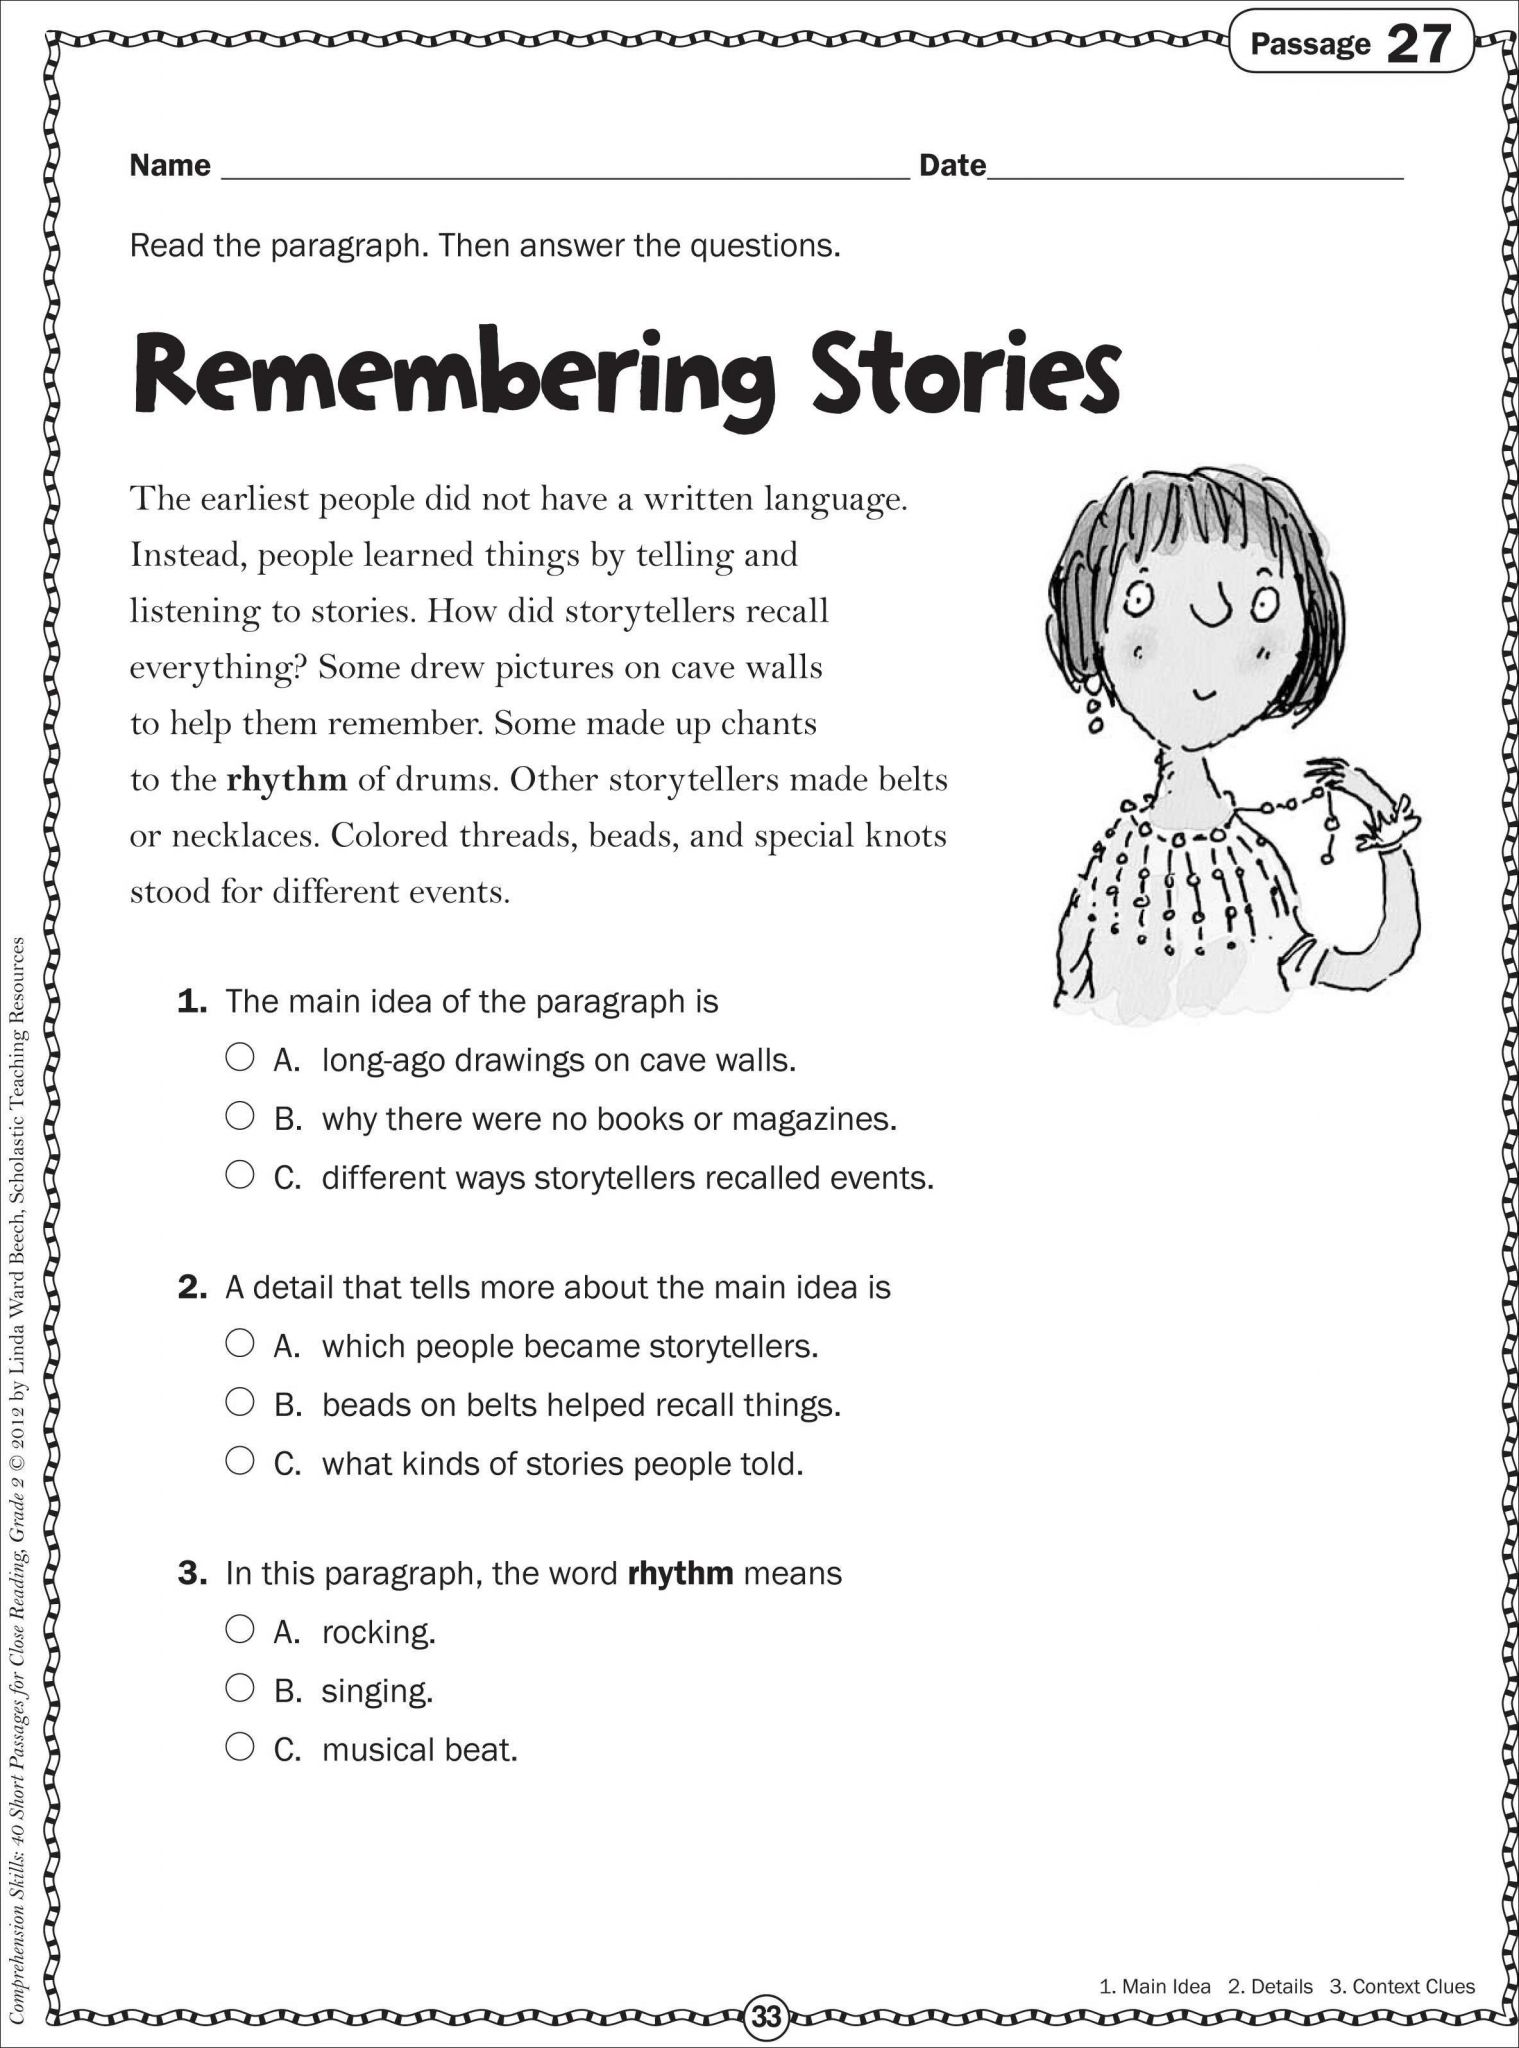 Reading Skills and Strategies Worksheet Animal Farm Along with 2nd Grade Reading Worksheets & Second Grade Reading Worksheet 1